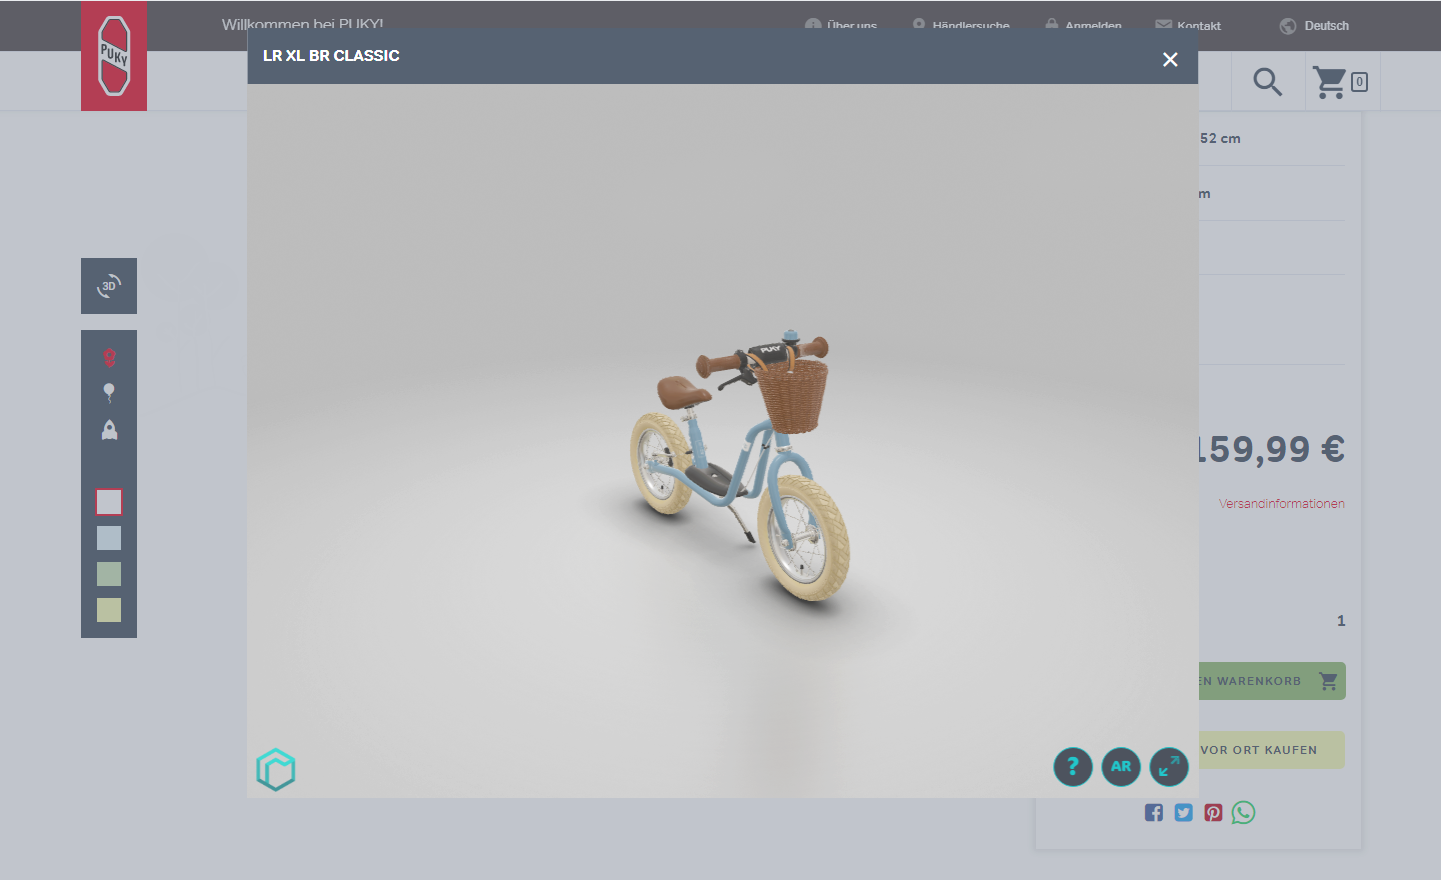 rooom 3D Product Viewer in PUKY Shop